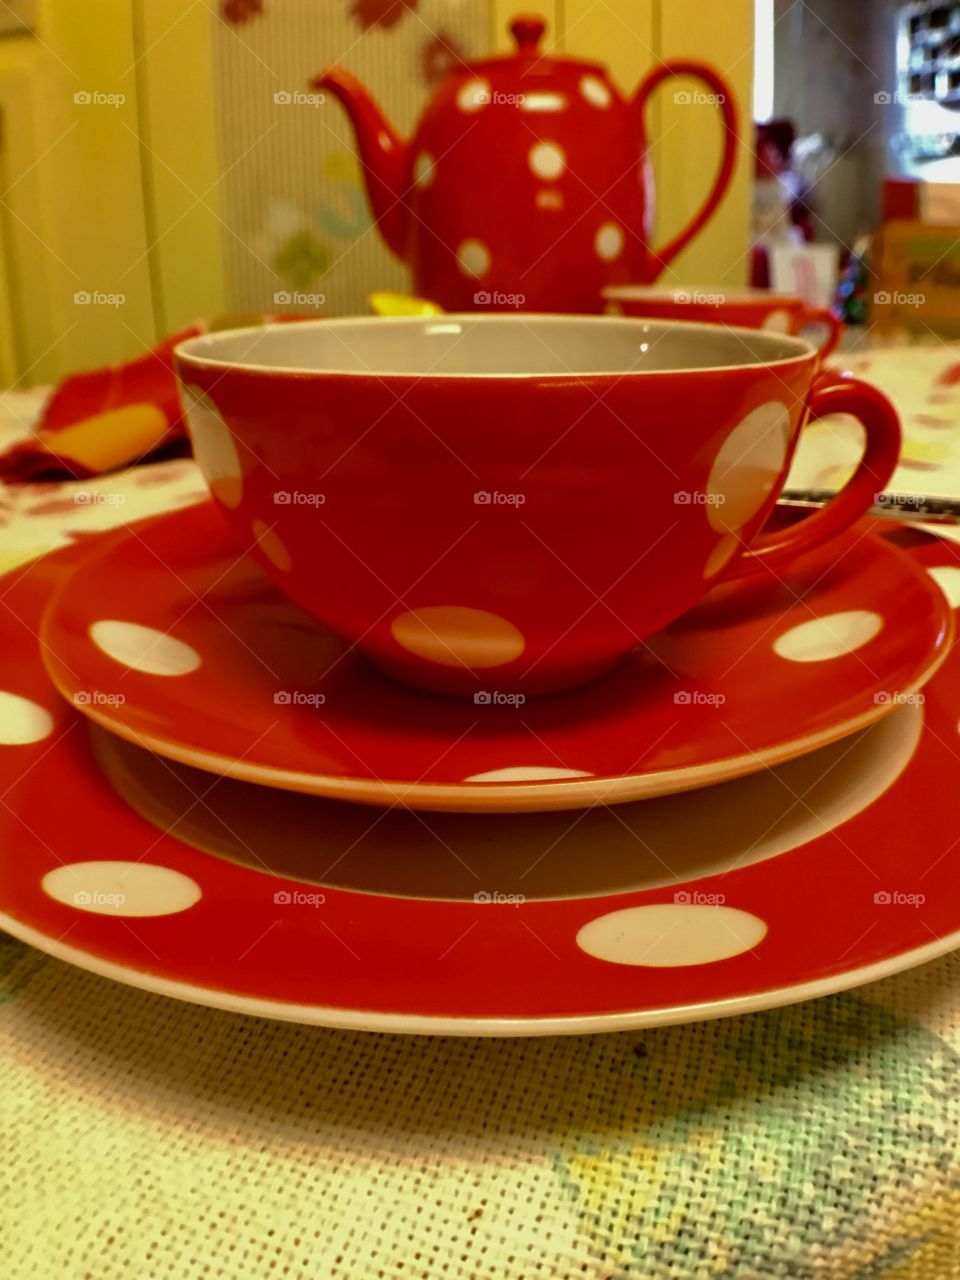 Red polkadot vintage or retro teapot, cup and saucer.